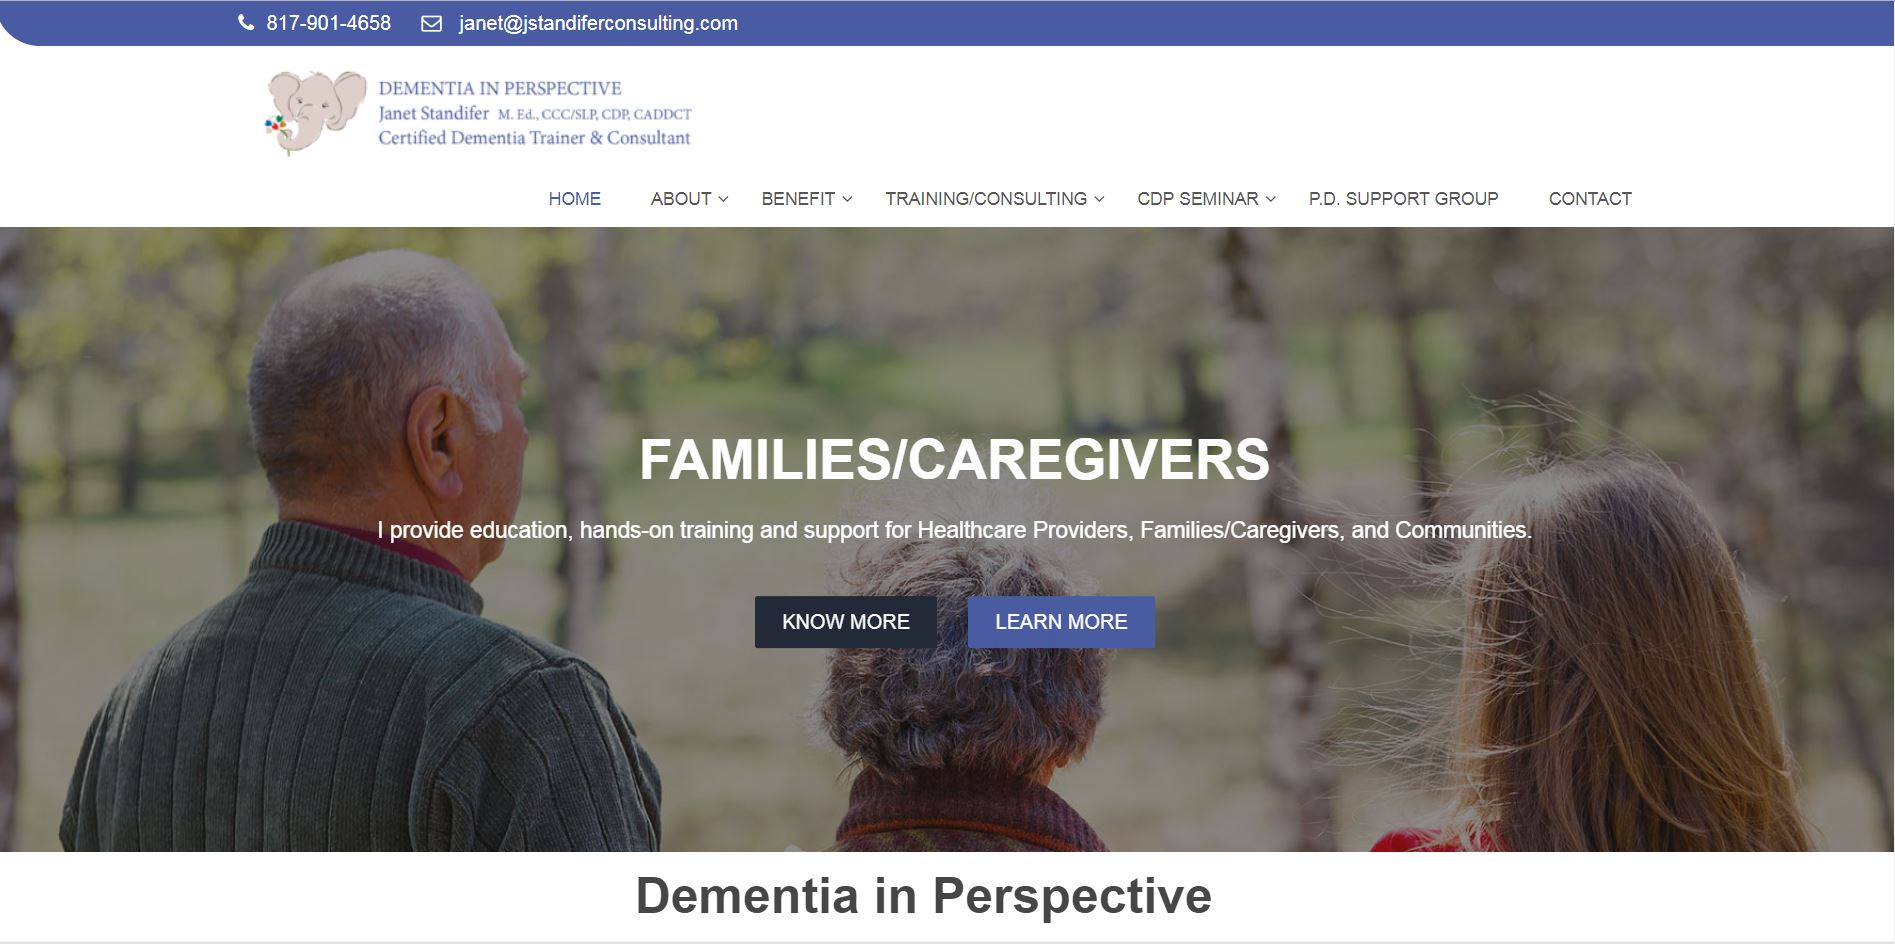 Dementia in Perspective